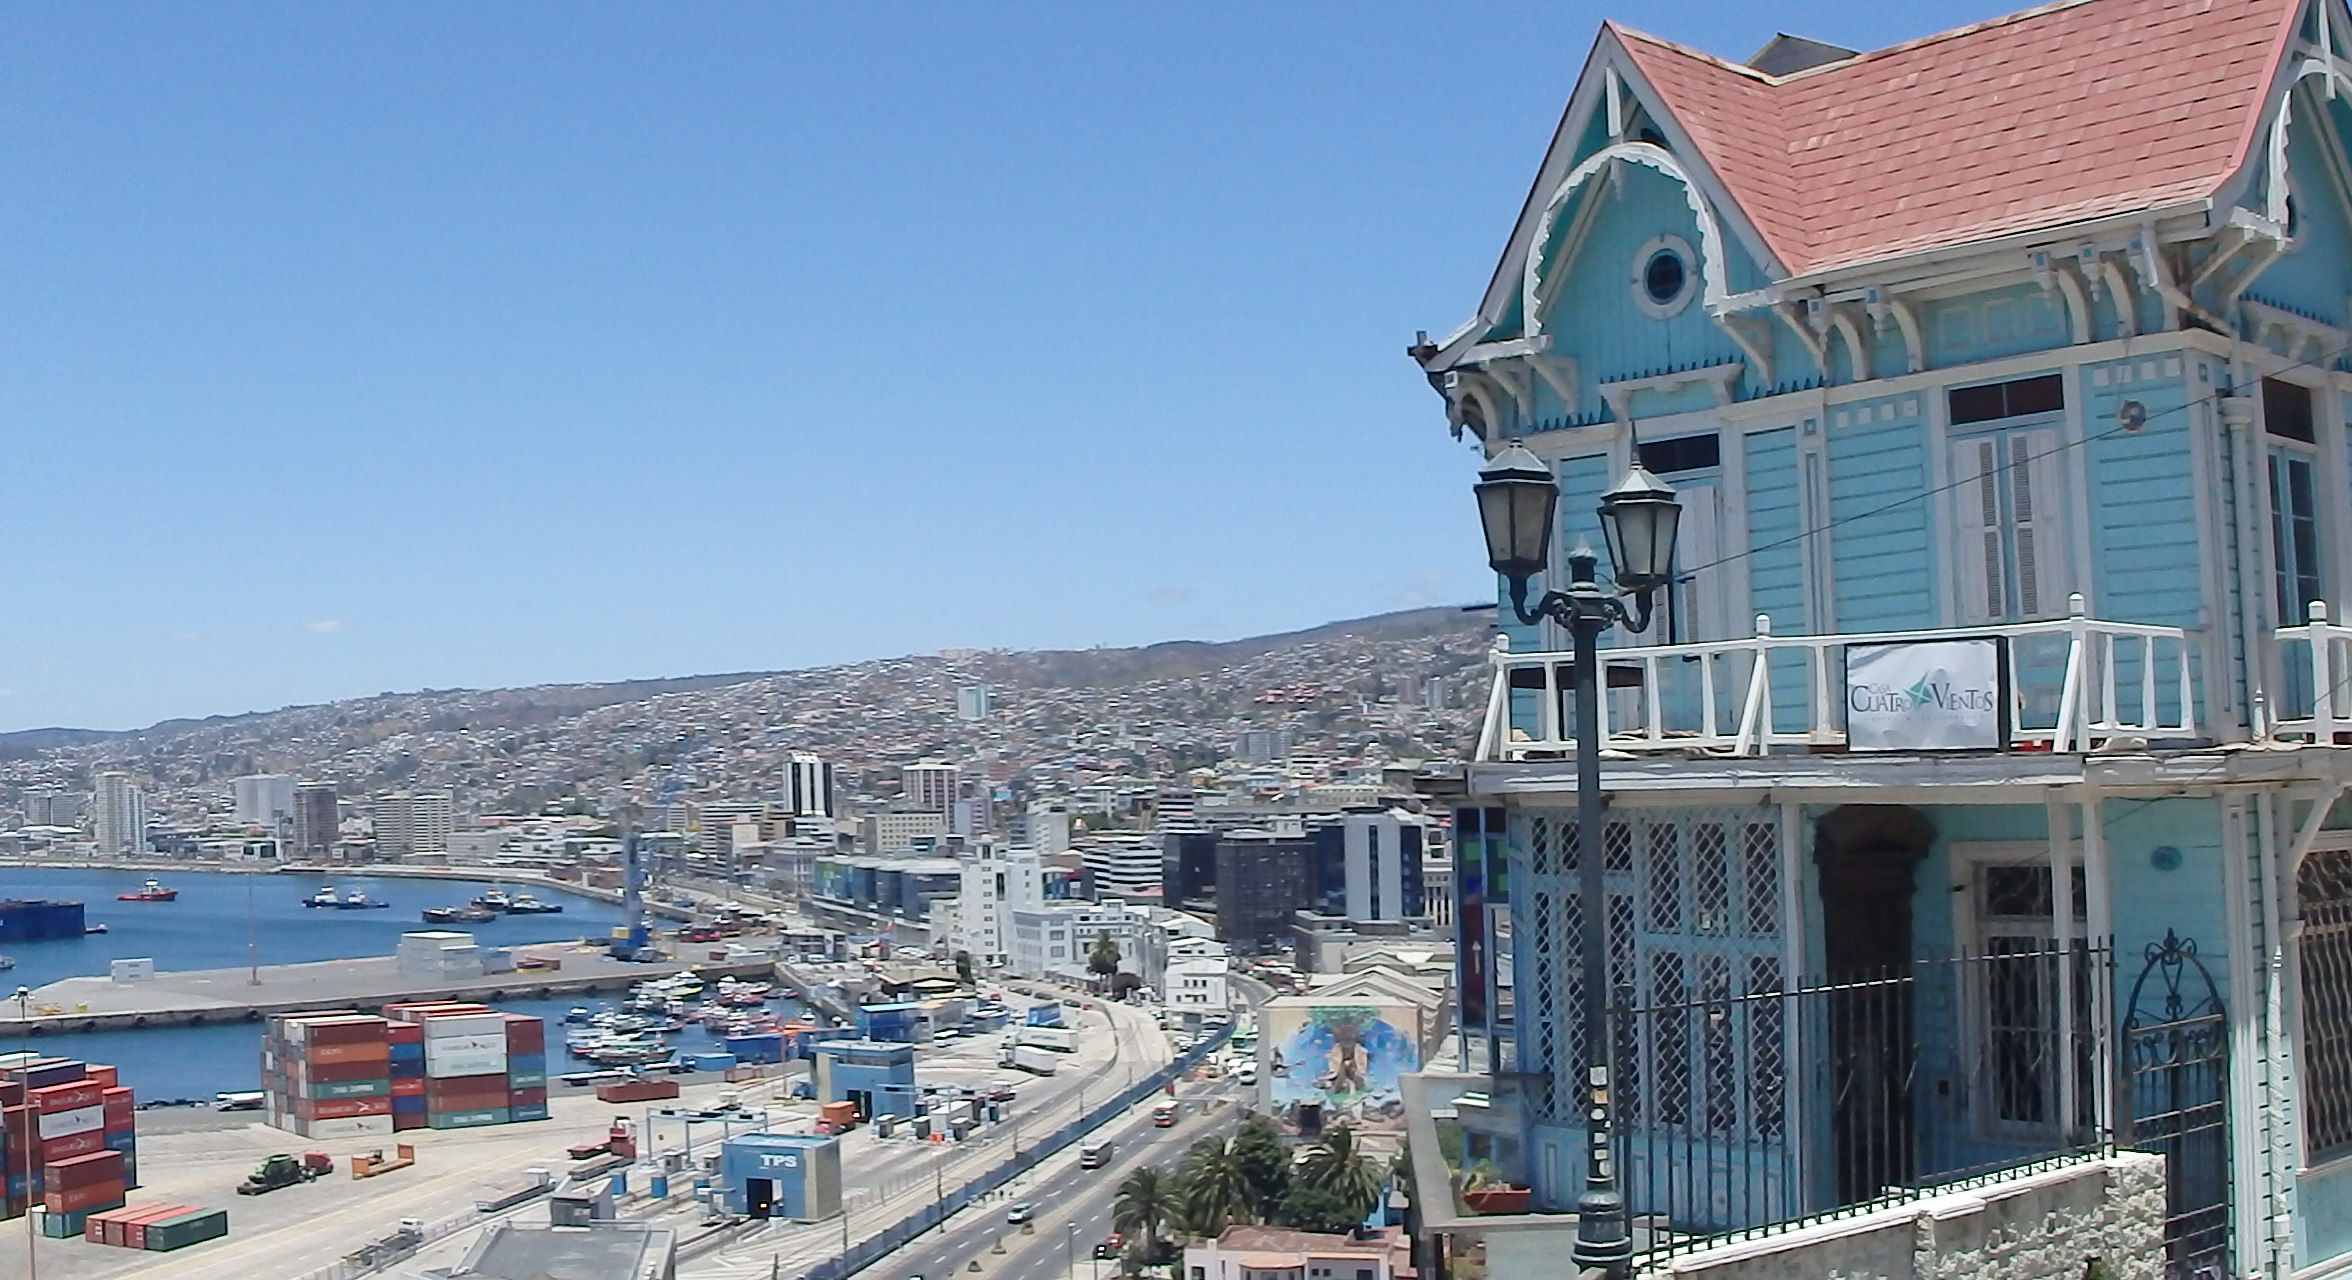 Get from Santiago Airport to Valparaiso, Chile | The Backpack Diary